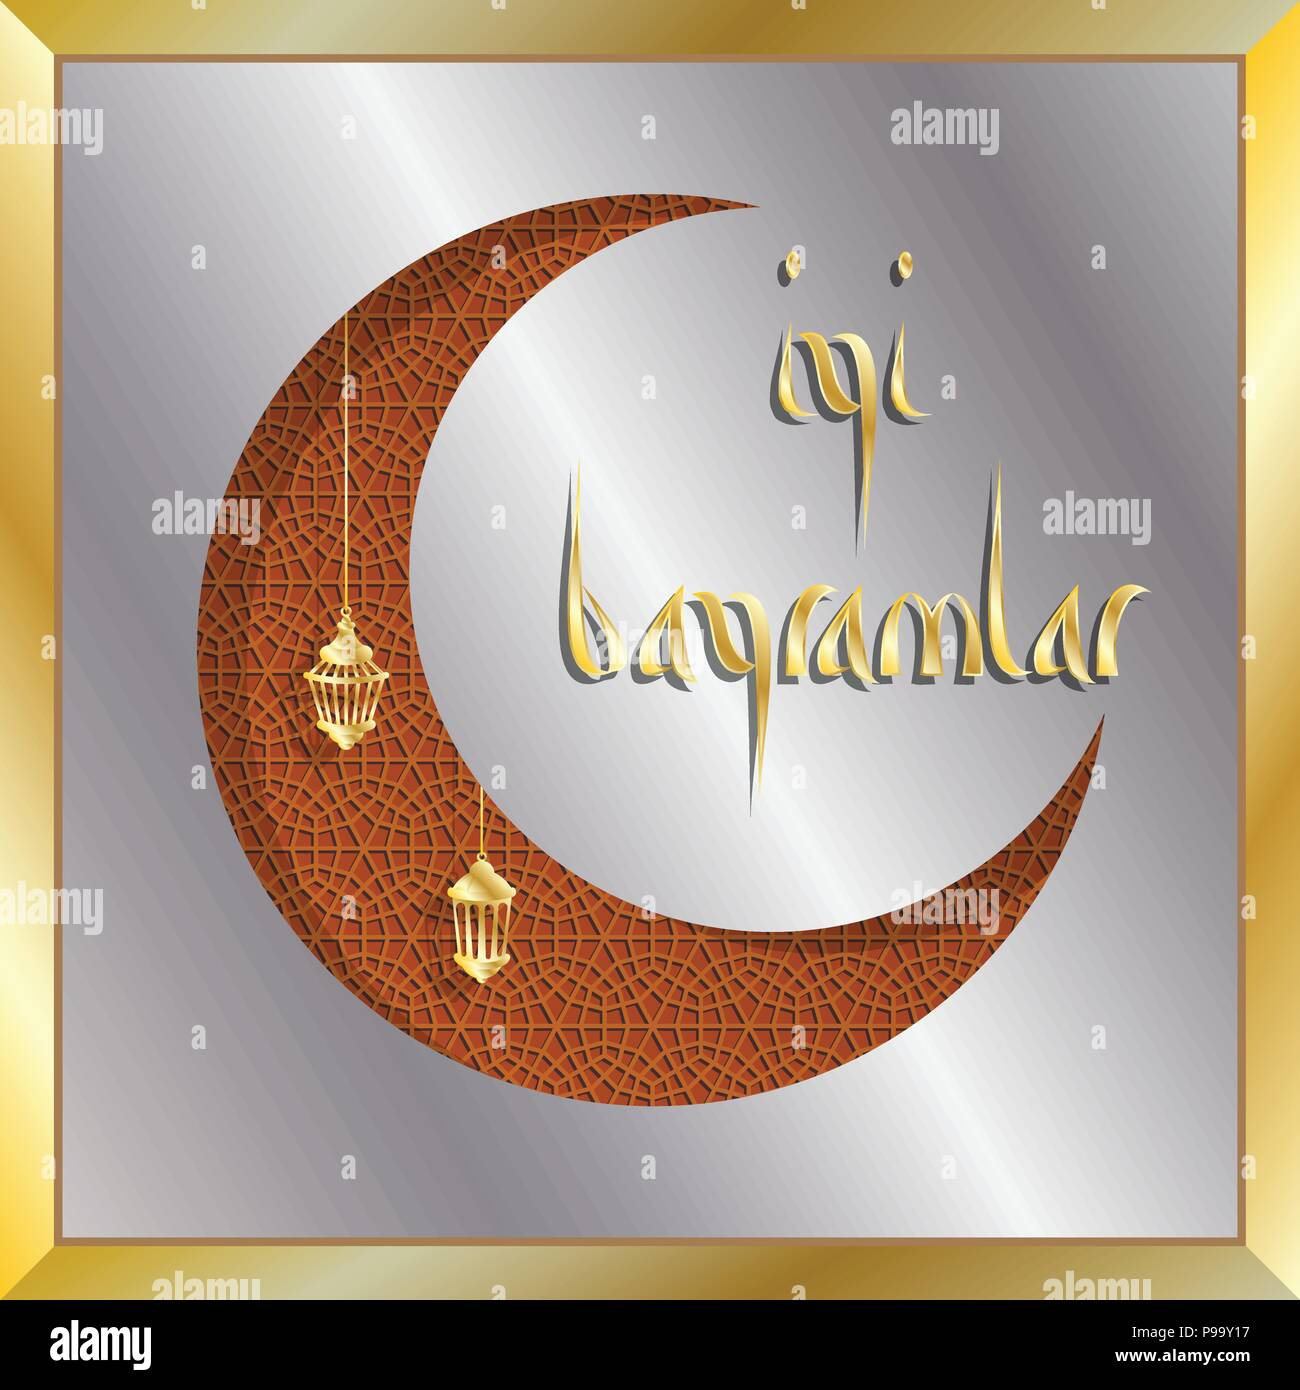 Turkish Eid Greeting Card With Crescent Moon For Muslim Holiday All